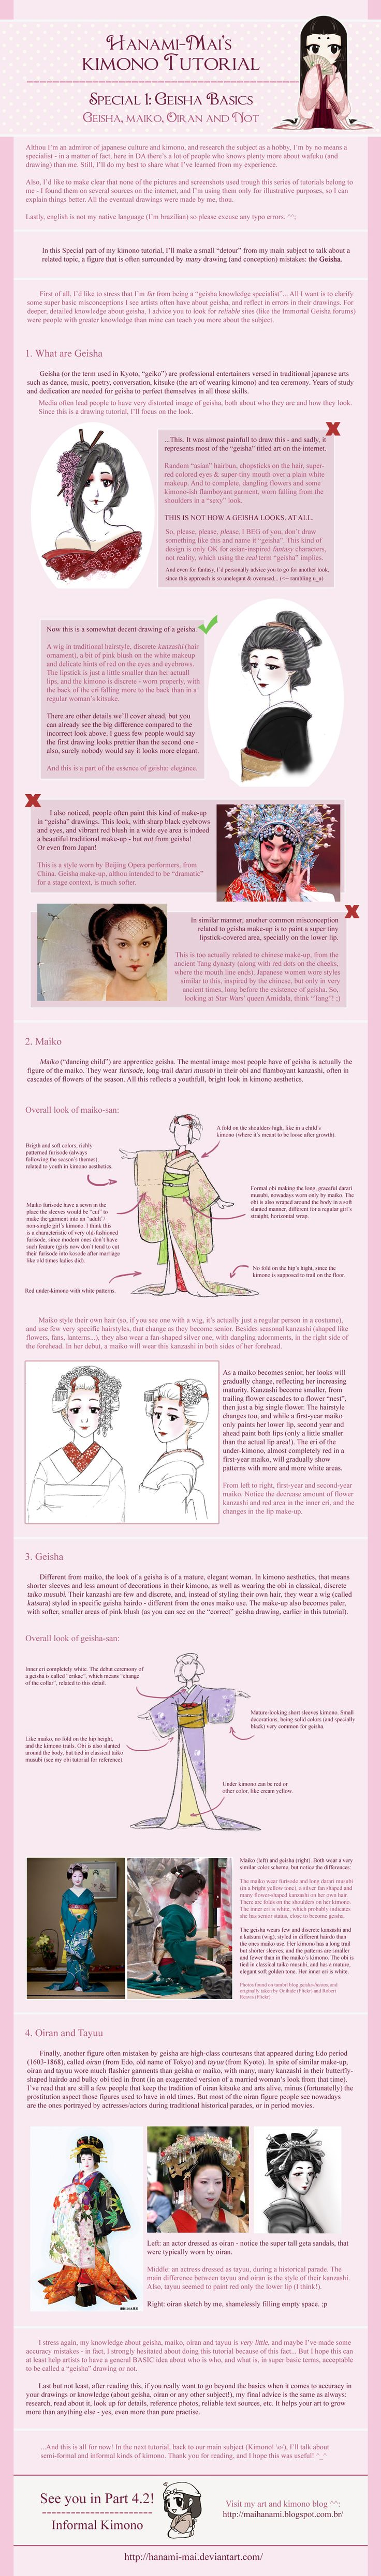 "Kimono Tutorial - Geisha Special by Hanami-Mai.deviantart.com on @deviantART - Part of a series of tutorials/infographics about kimono. This one specifically addresses geisha (including maiko and geiko) and oiran styles. There's a good deal of misconception on what counts as ""geisha"". So this is a good run-down on what's really going on. Also, what most people consider ""geisha"" is actually closer to what a maiko wears than a fully fledged geiko - things get LESS flamboyant over time, not…"